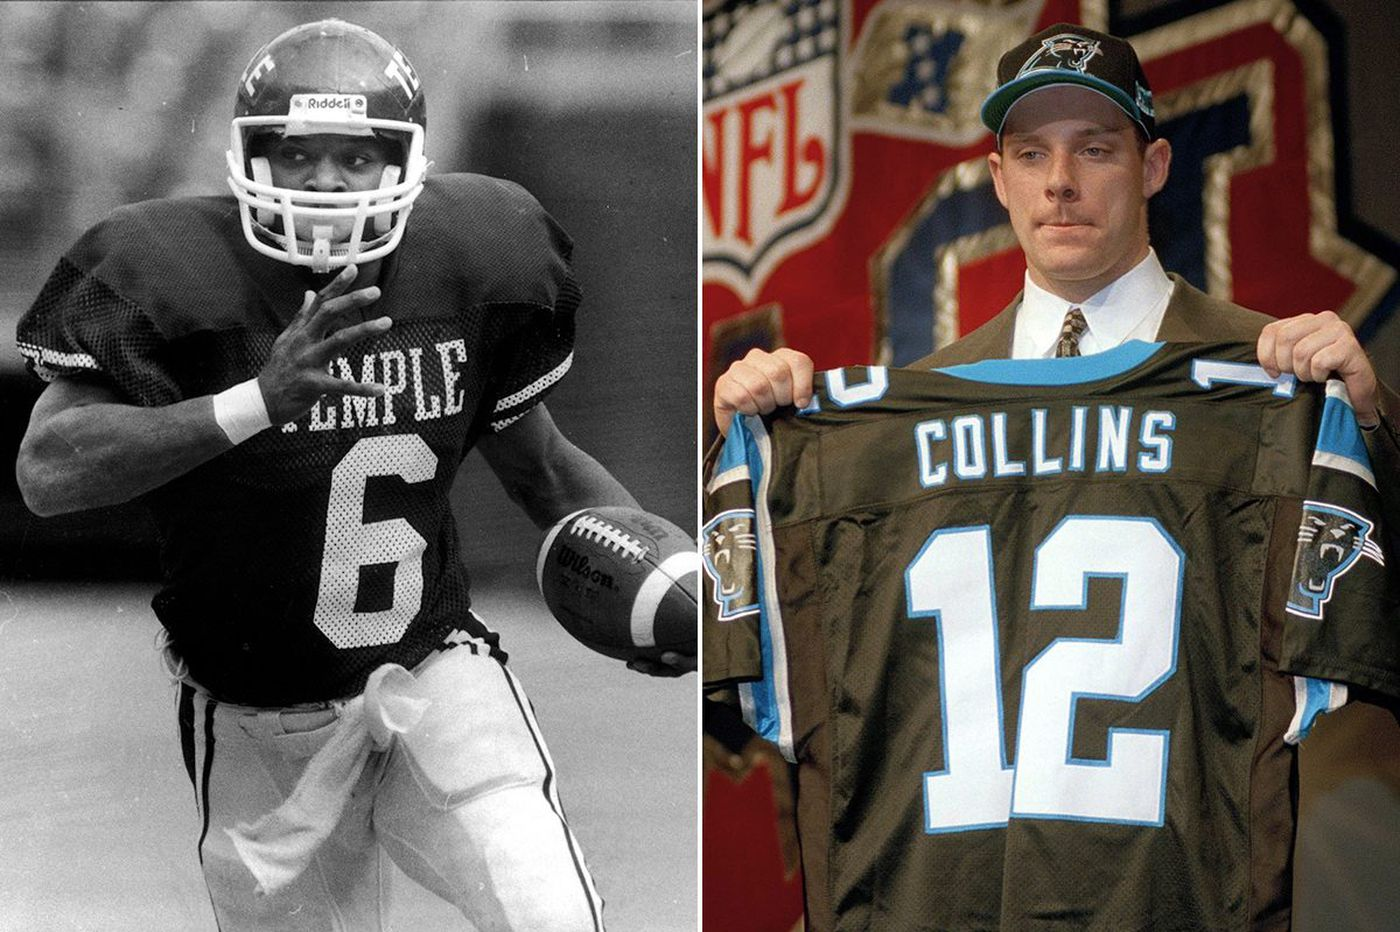 Temple's Paul Palmer, Penn State's Kerry Collins elected to College Football Hall of Fame